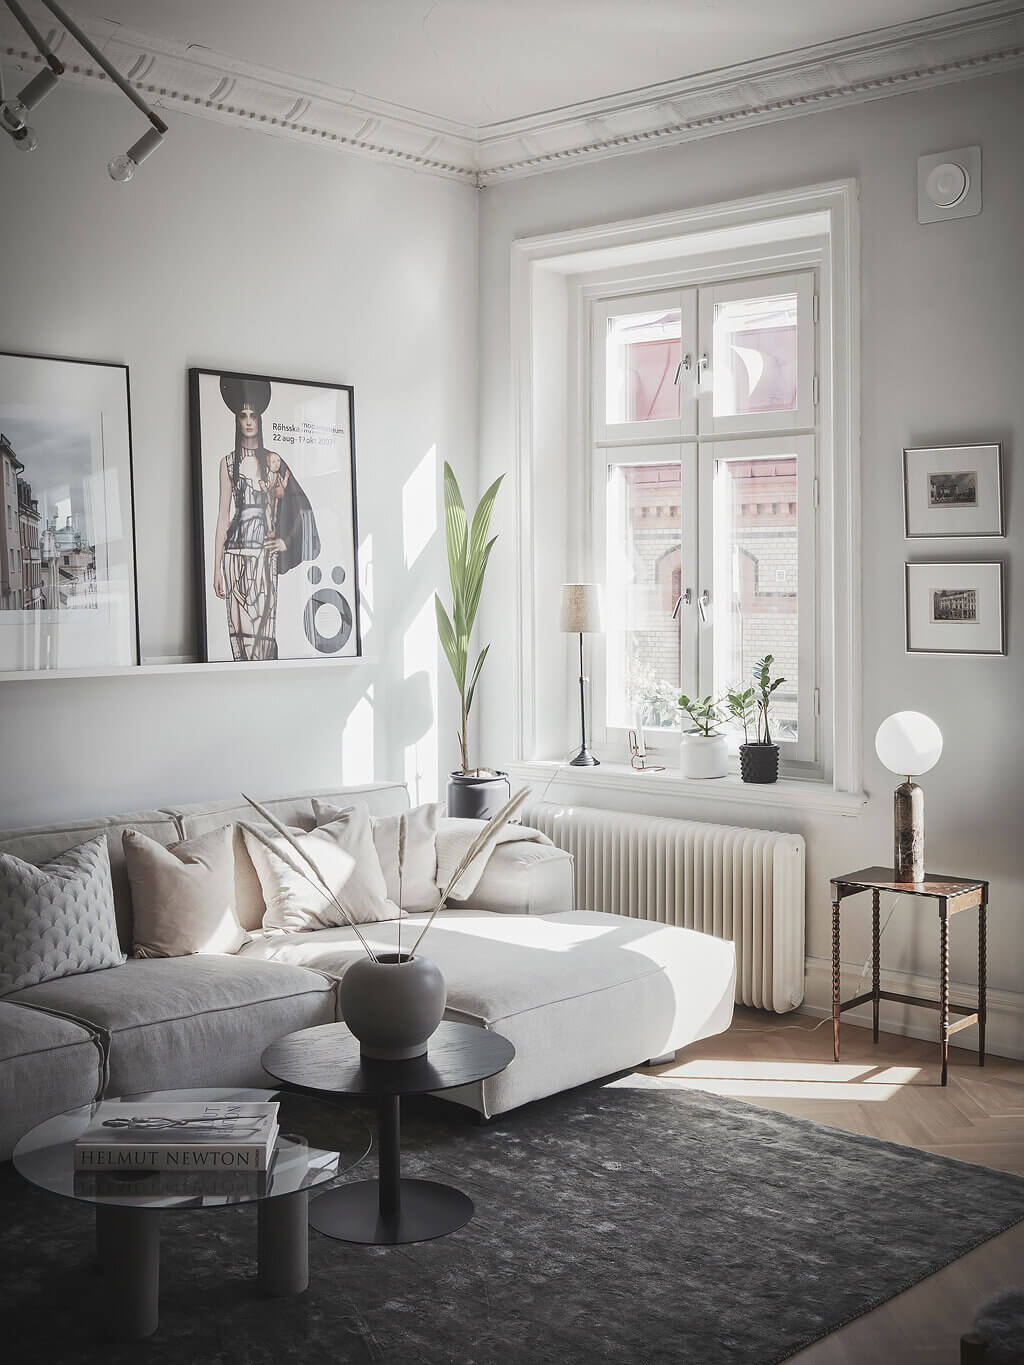 A Light Classic Scandinavian Apartment with Period Details